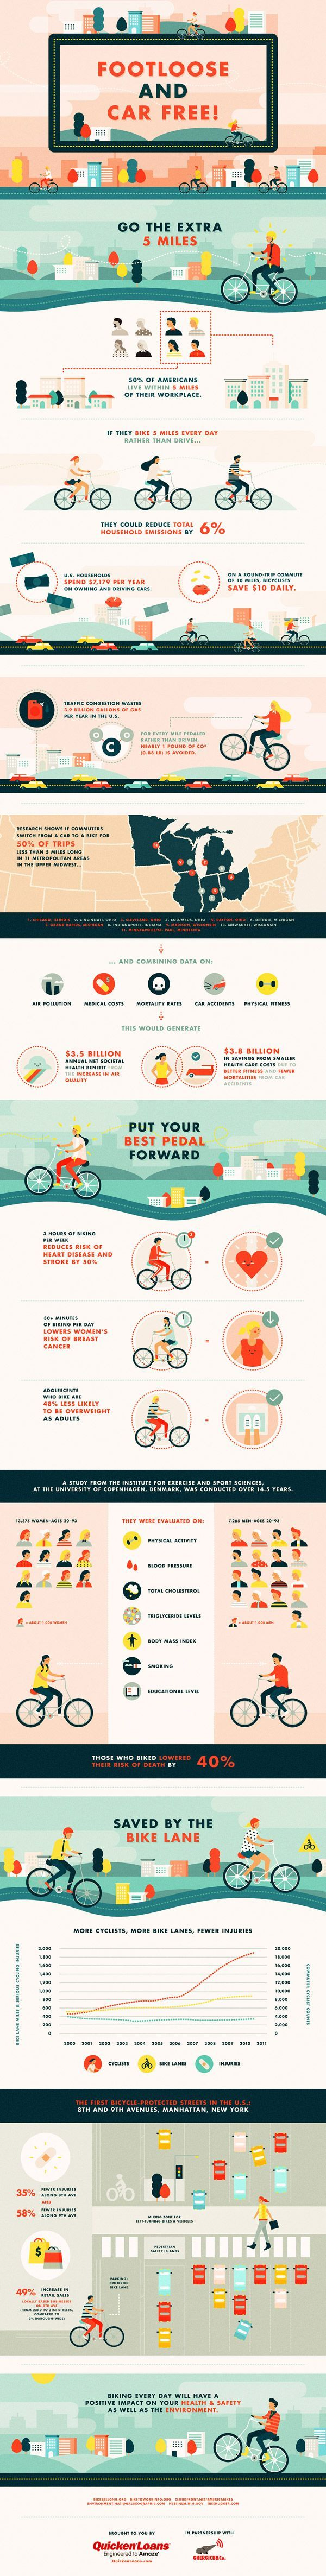 Footloose and Car Free - How Biking Improves Your Health #Infographics — Lightscap3s.com